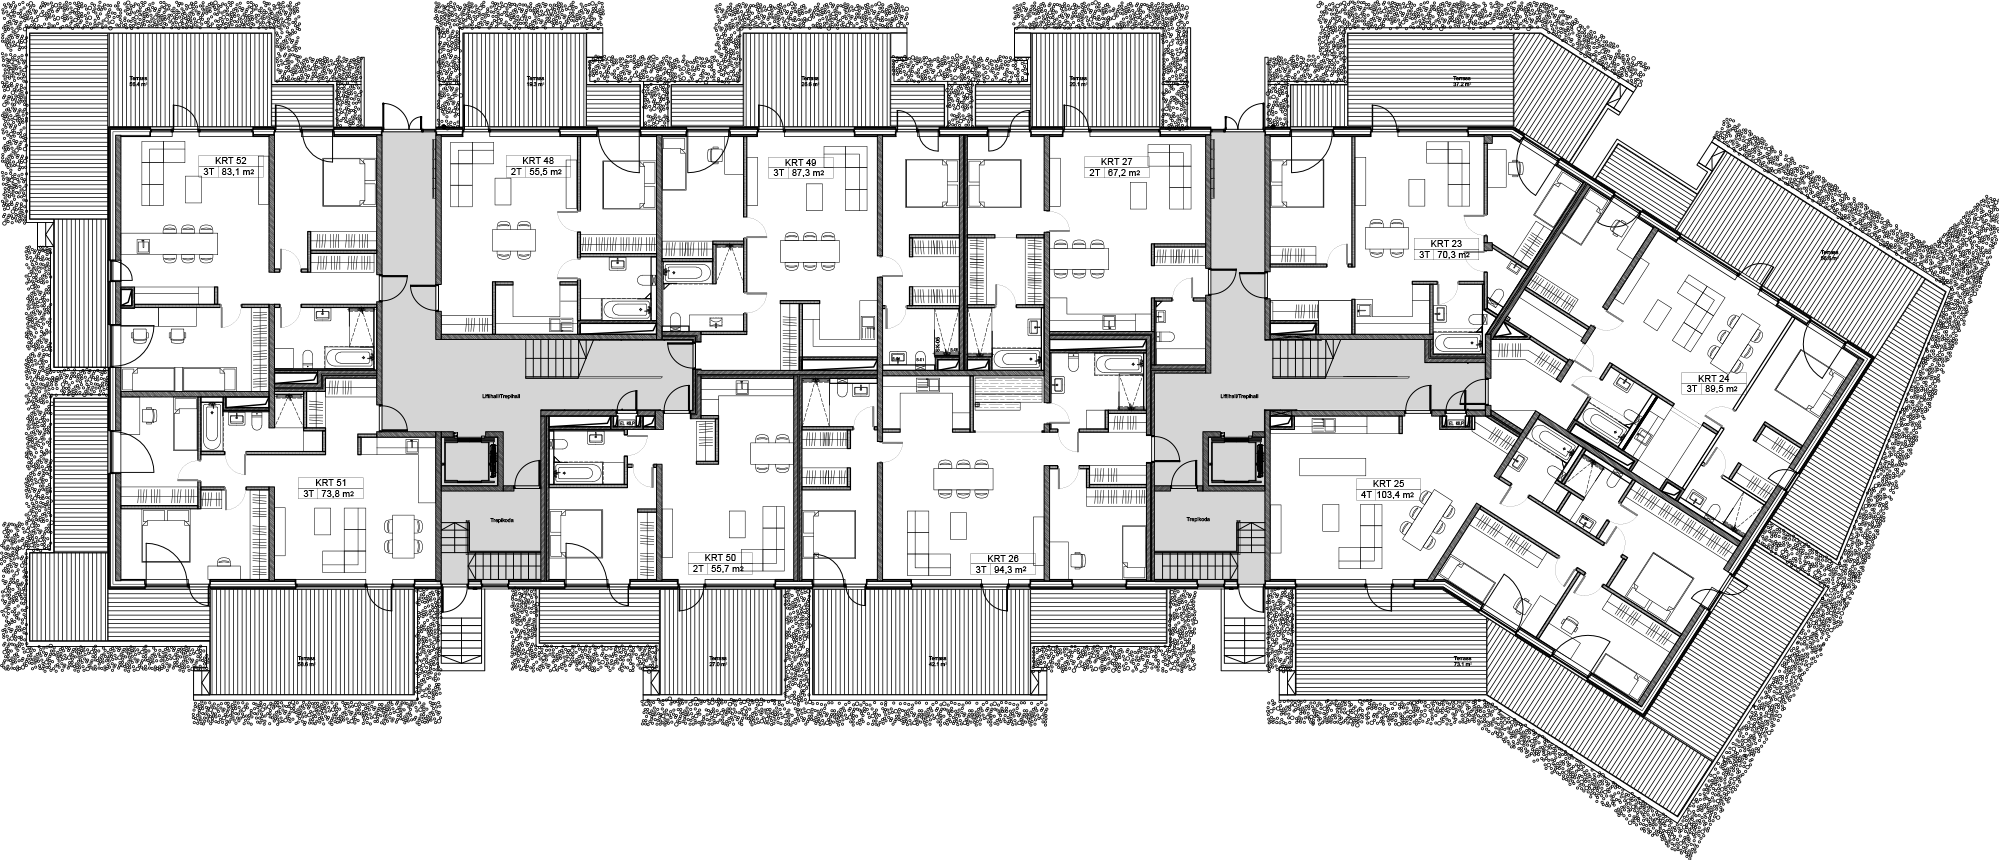 Floor 1 plan of Kiikri Apartment House B